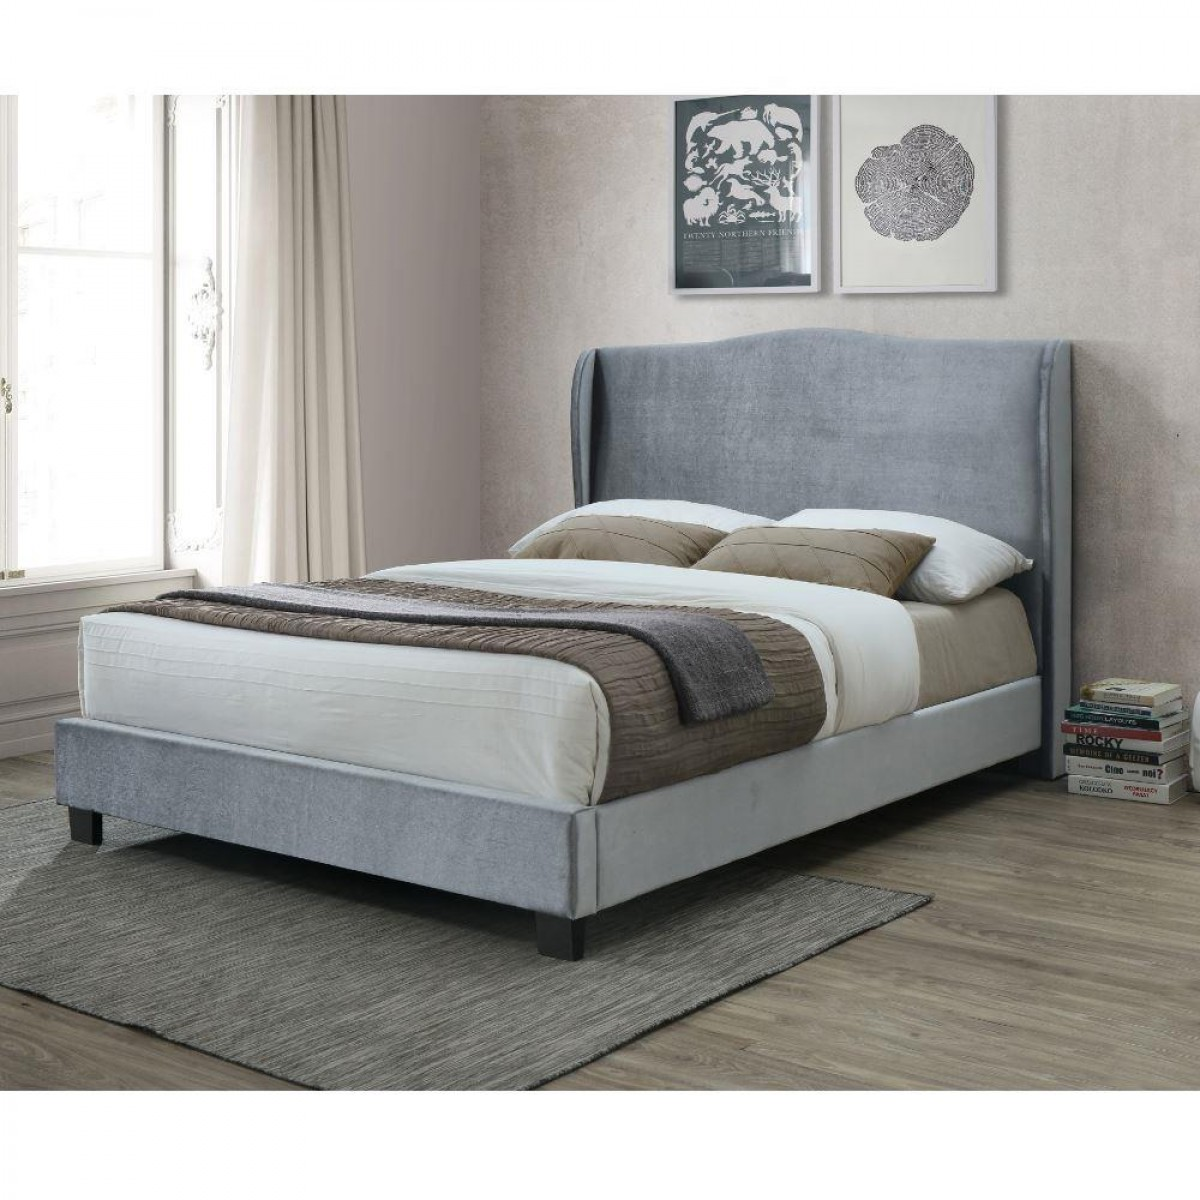 Dover Silver Velvet Fabric Winged Bed